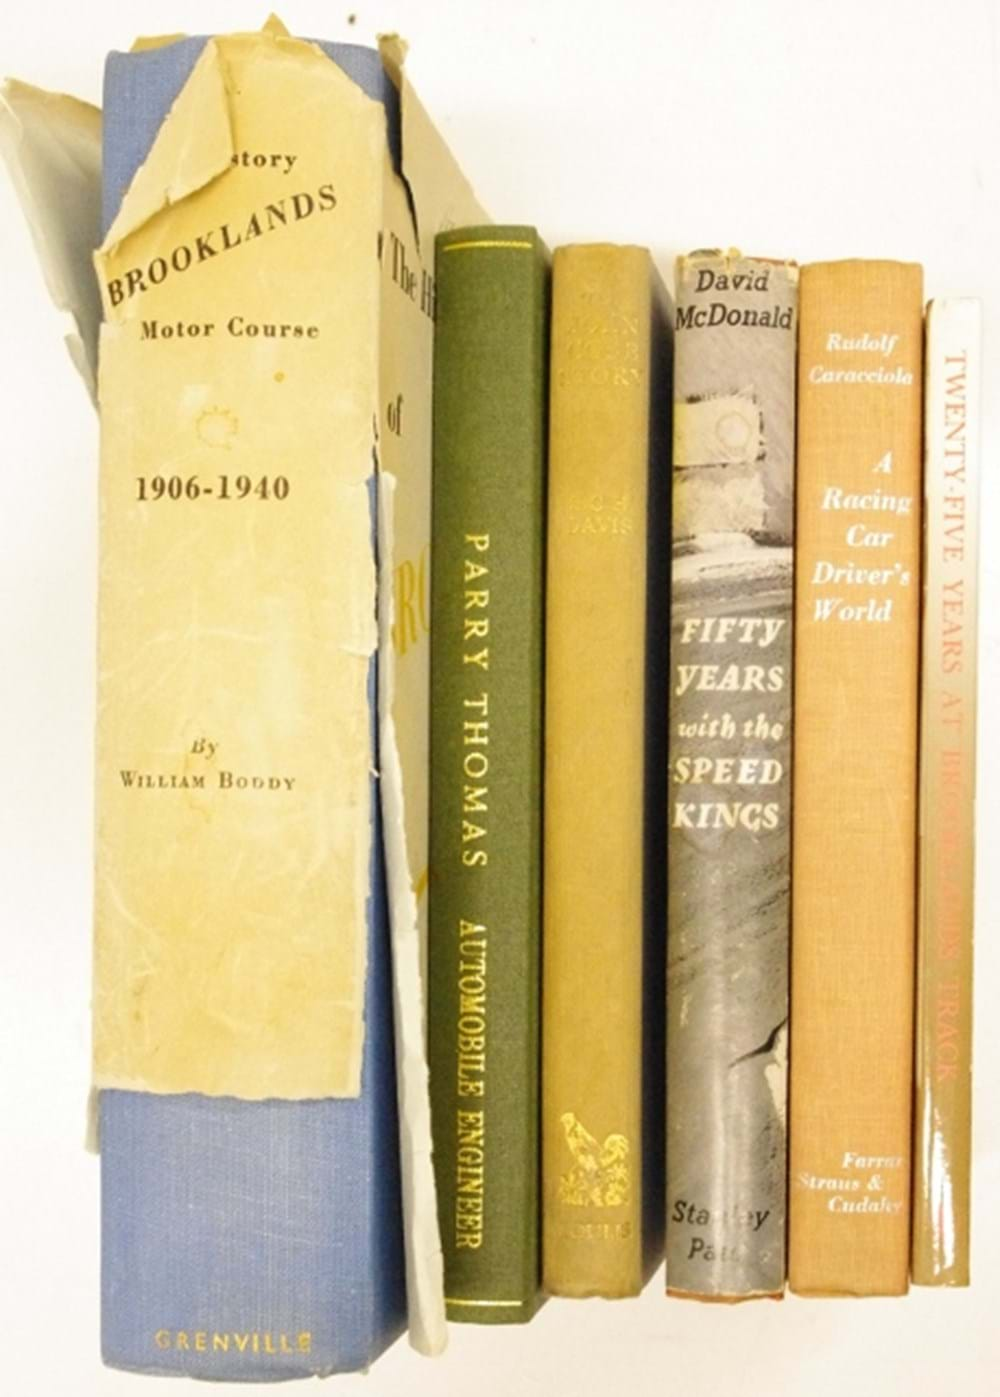 Lot 23. - Six motoring books